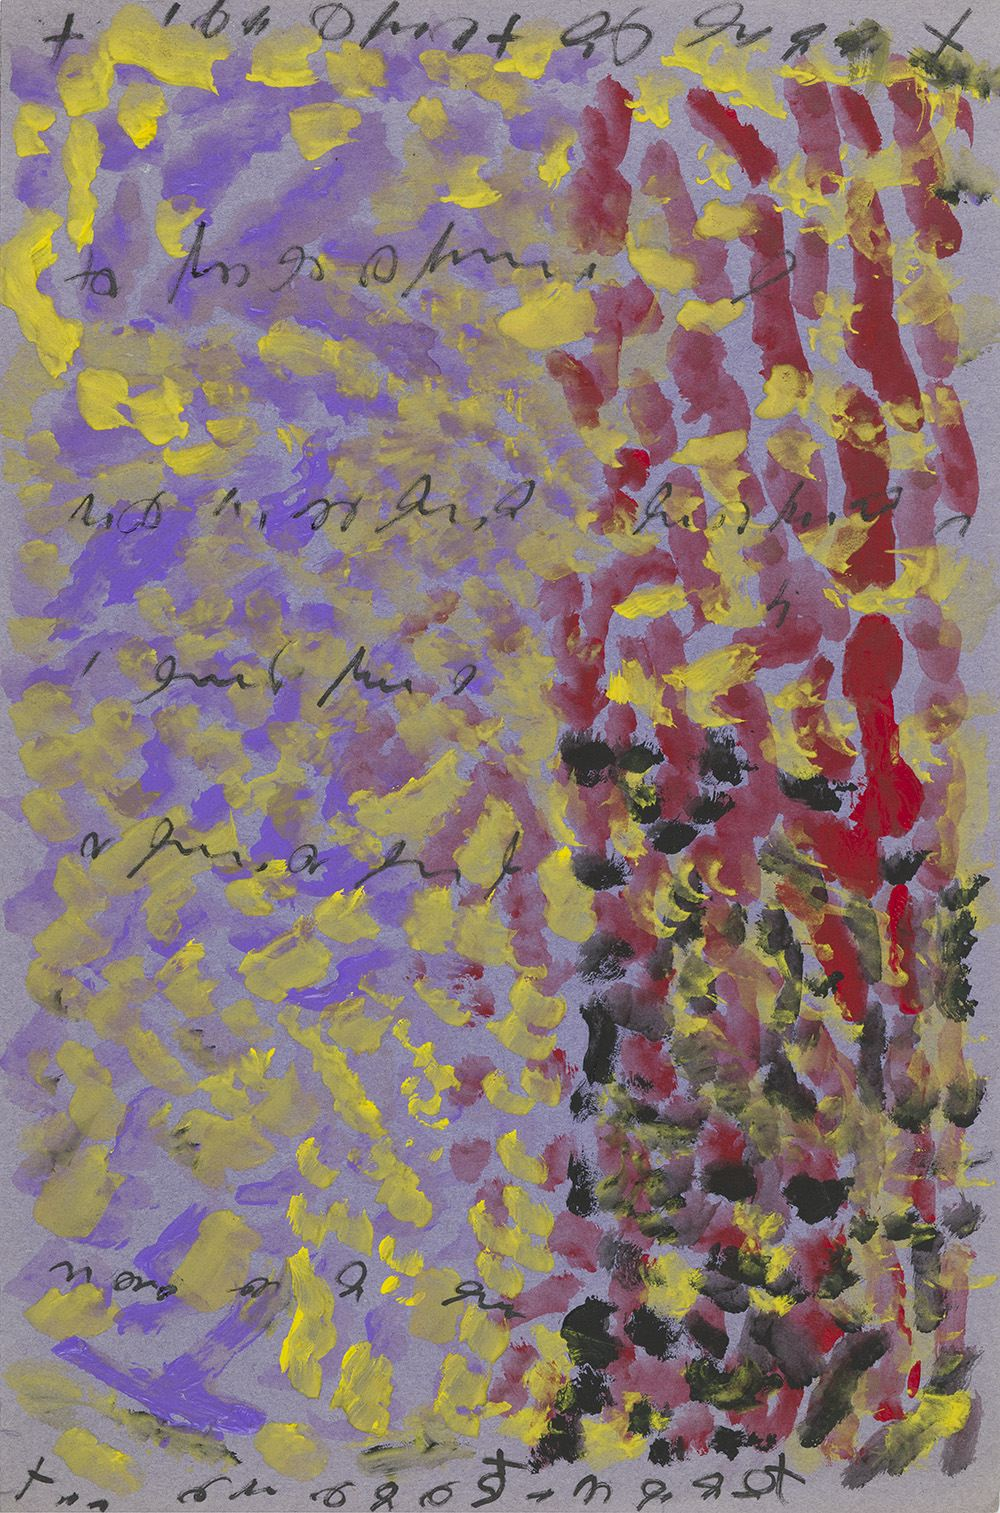 J.B. Murray    Untitled  , c. 1978-1988 Tempera paint and marker on paper 18 x 12 inches 45.7 x 30.5 cm JBM 533